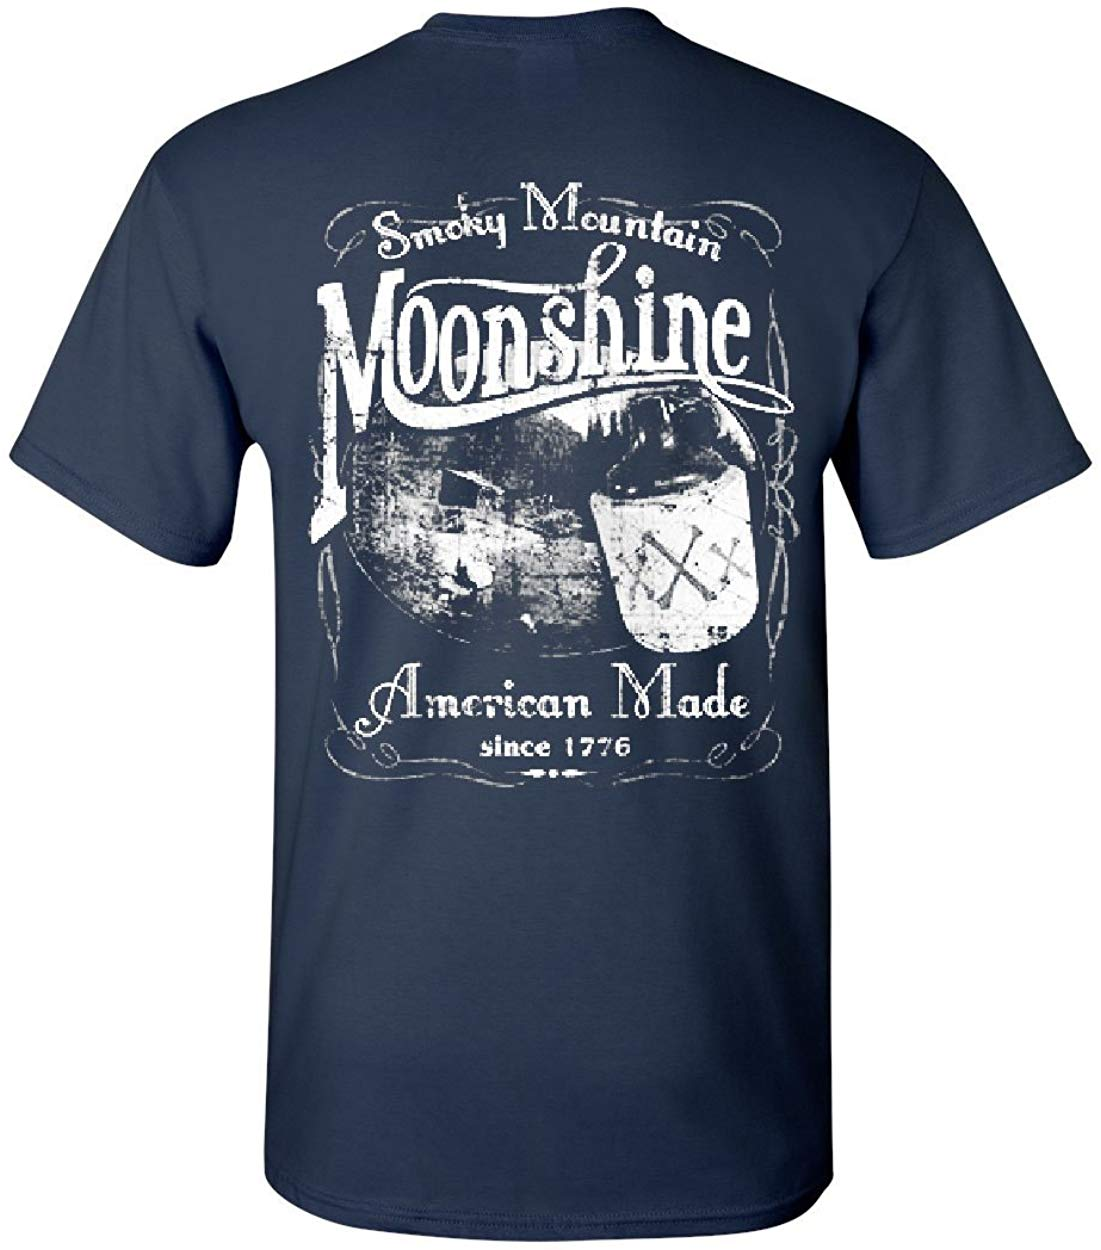 Smoky Mountain Moonshine T Shirt Men Women Tennessee Whiskey TEE Shirt Free Shipping Funny Tops image